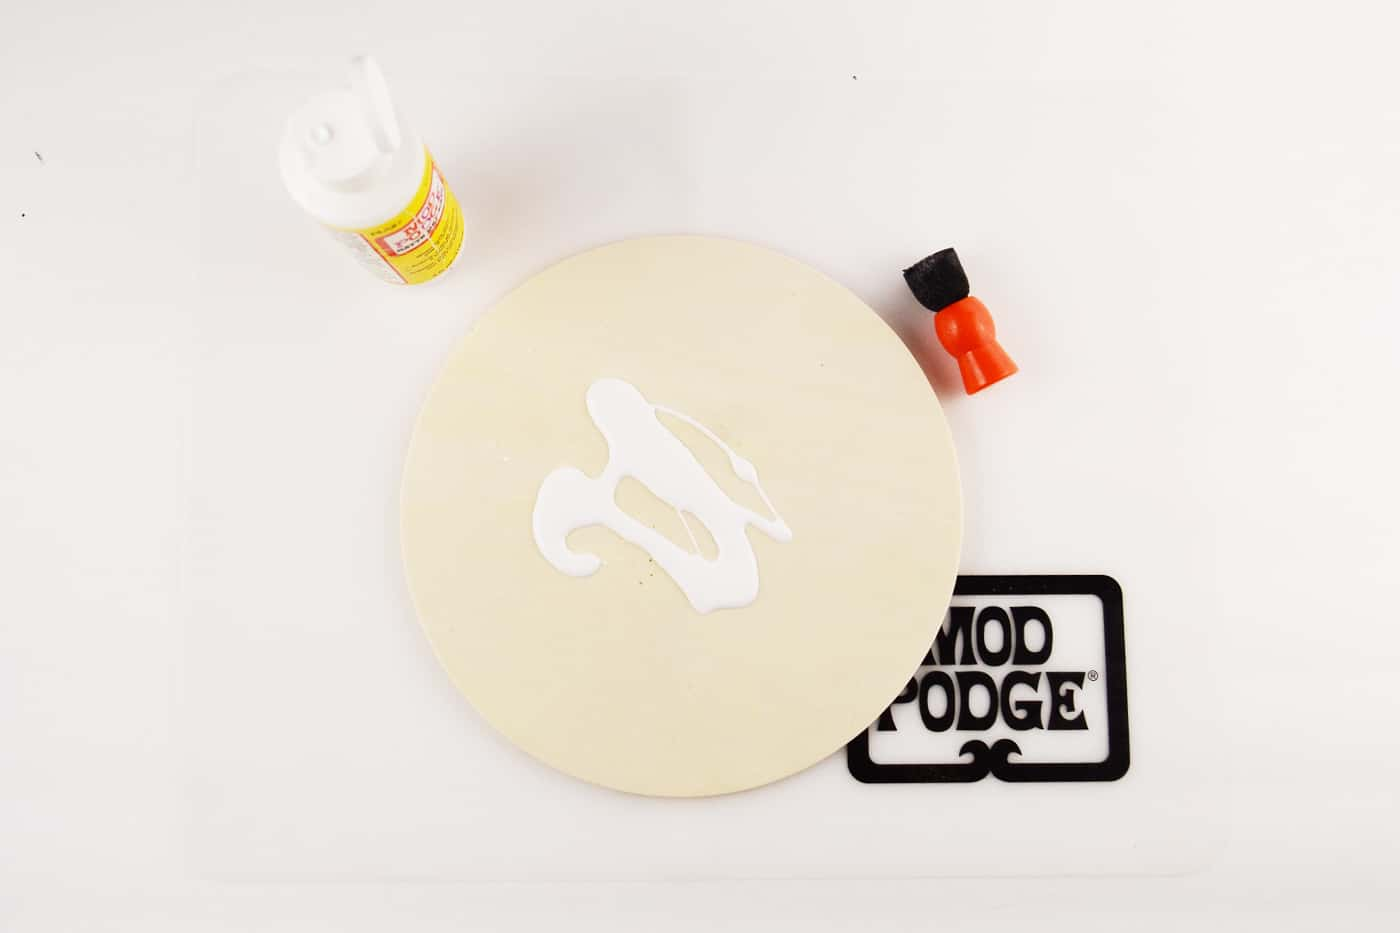 Mod Podge Matte on top of a wood circle with a spouncer next to it